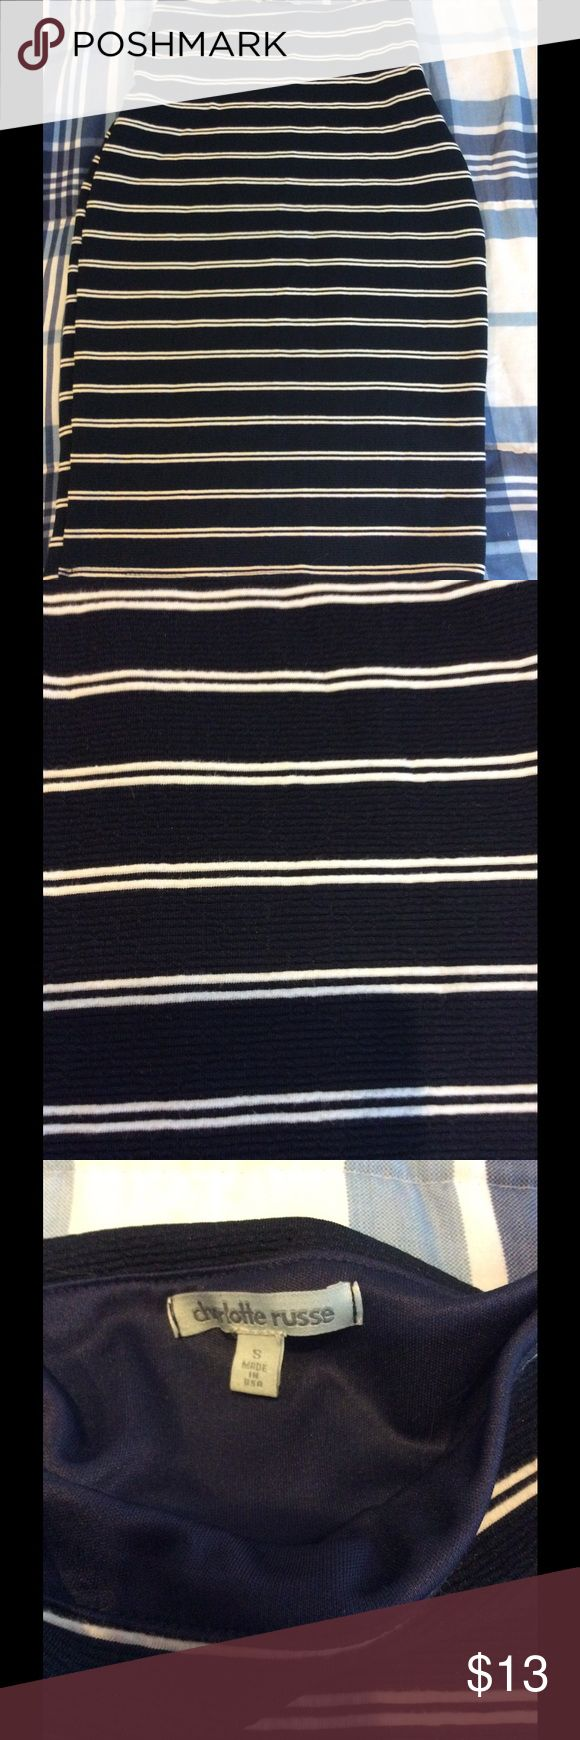 Navy and white striped pencil skirt From Charlotte Russe. Great condition, barely worn. For the office or date night. Charlotte Russe Skirts Pencil